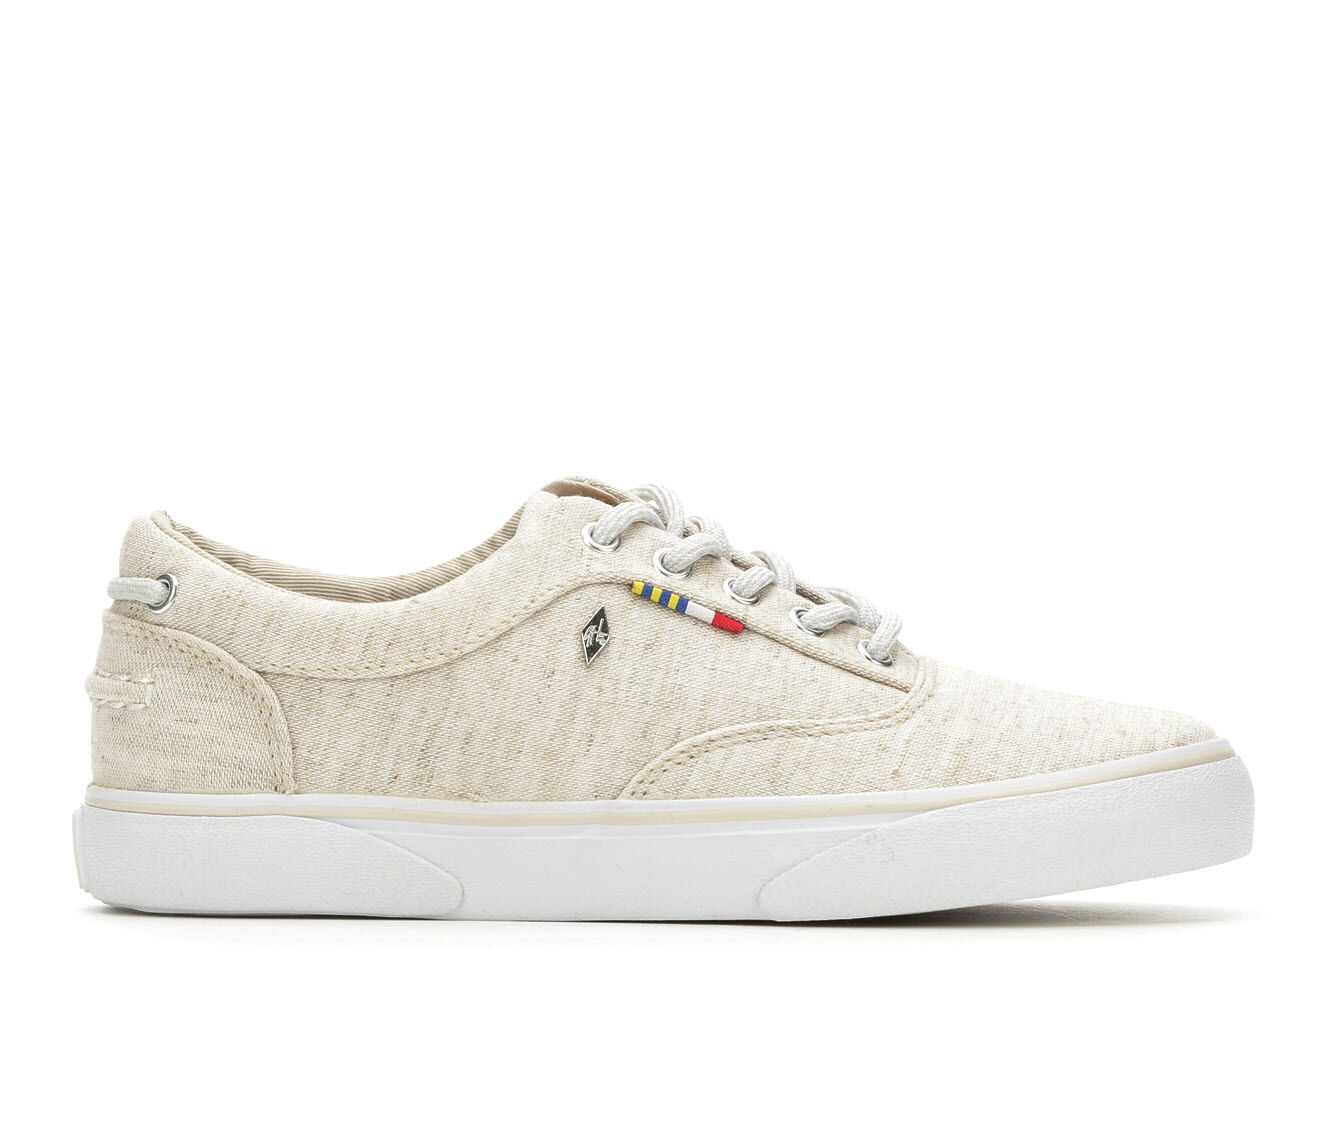 clearance price Women's Guy Harvey Atlantic Sneakers Off White/White